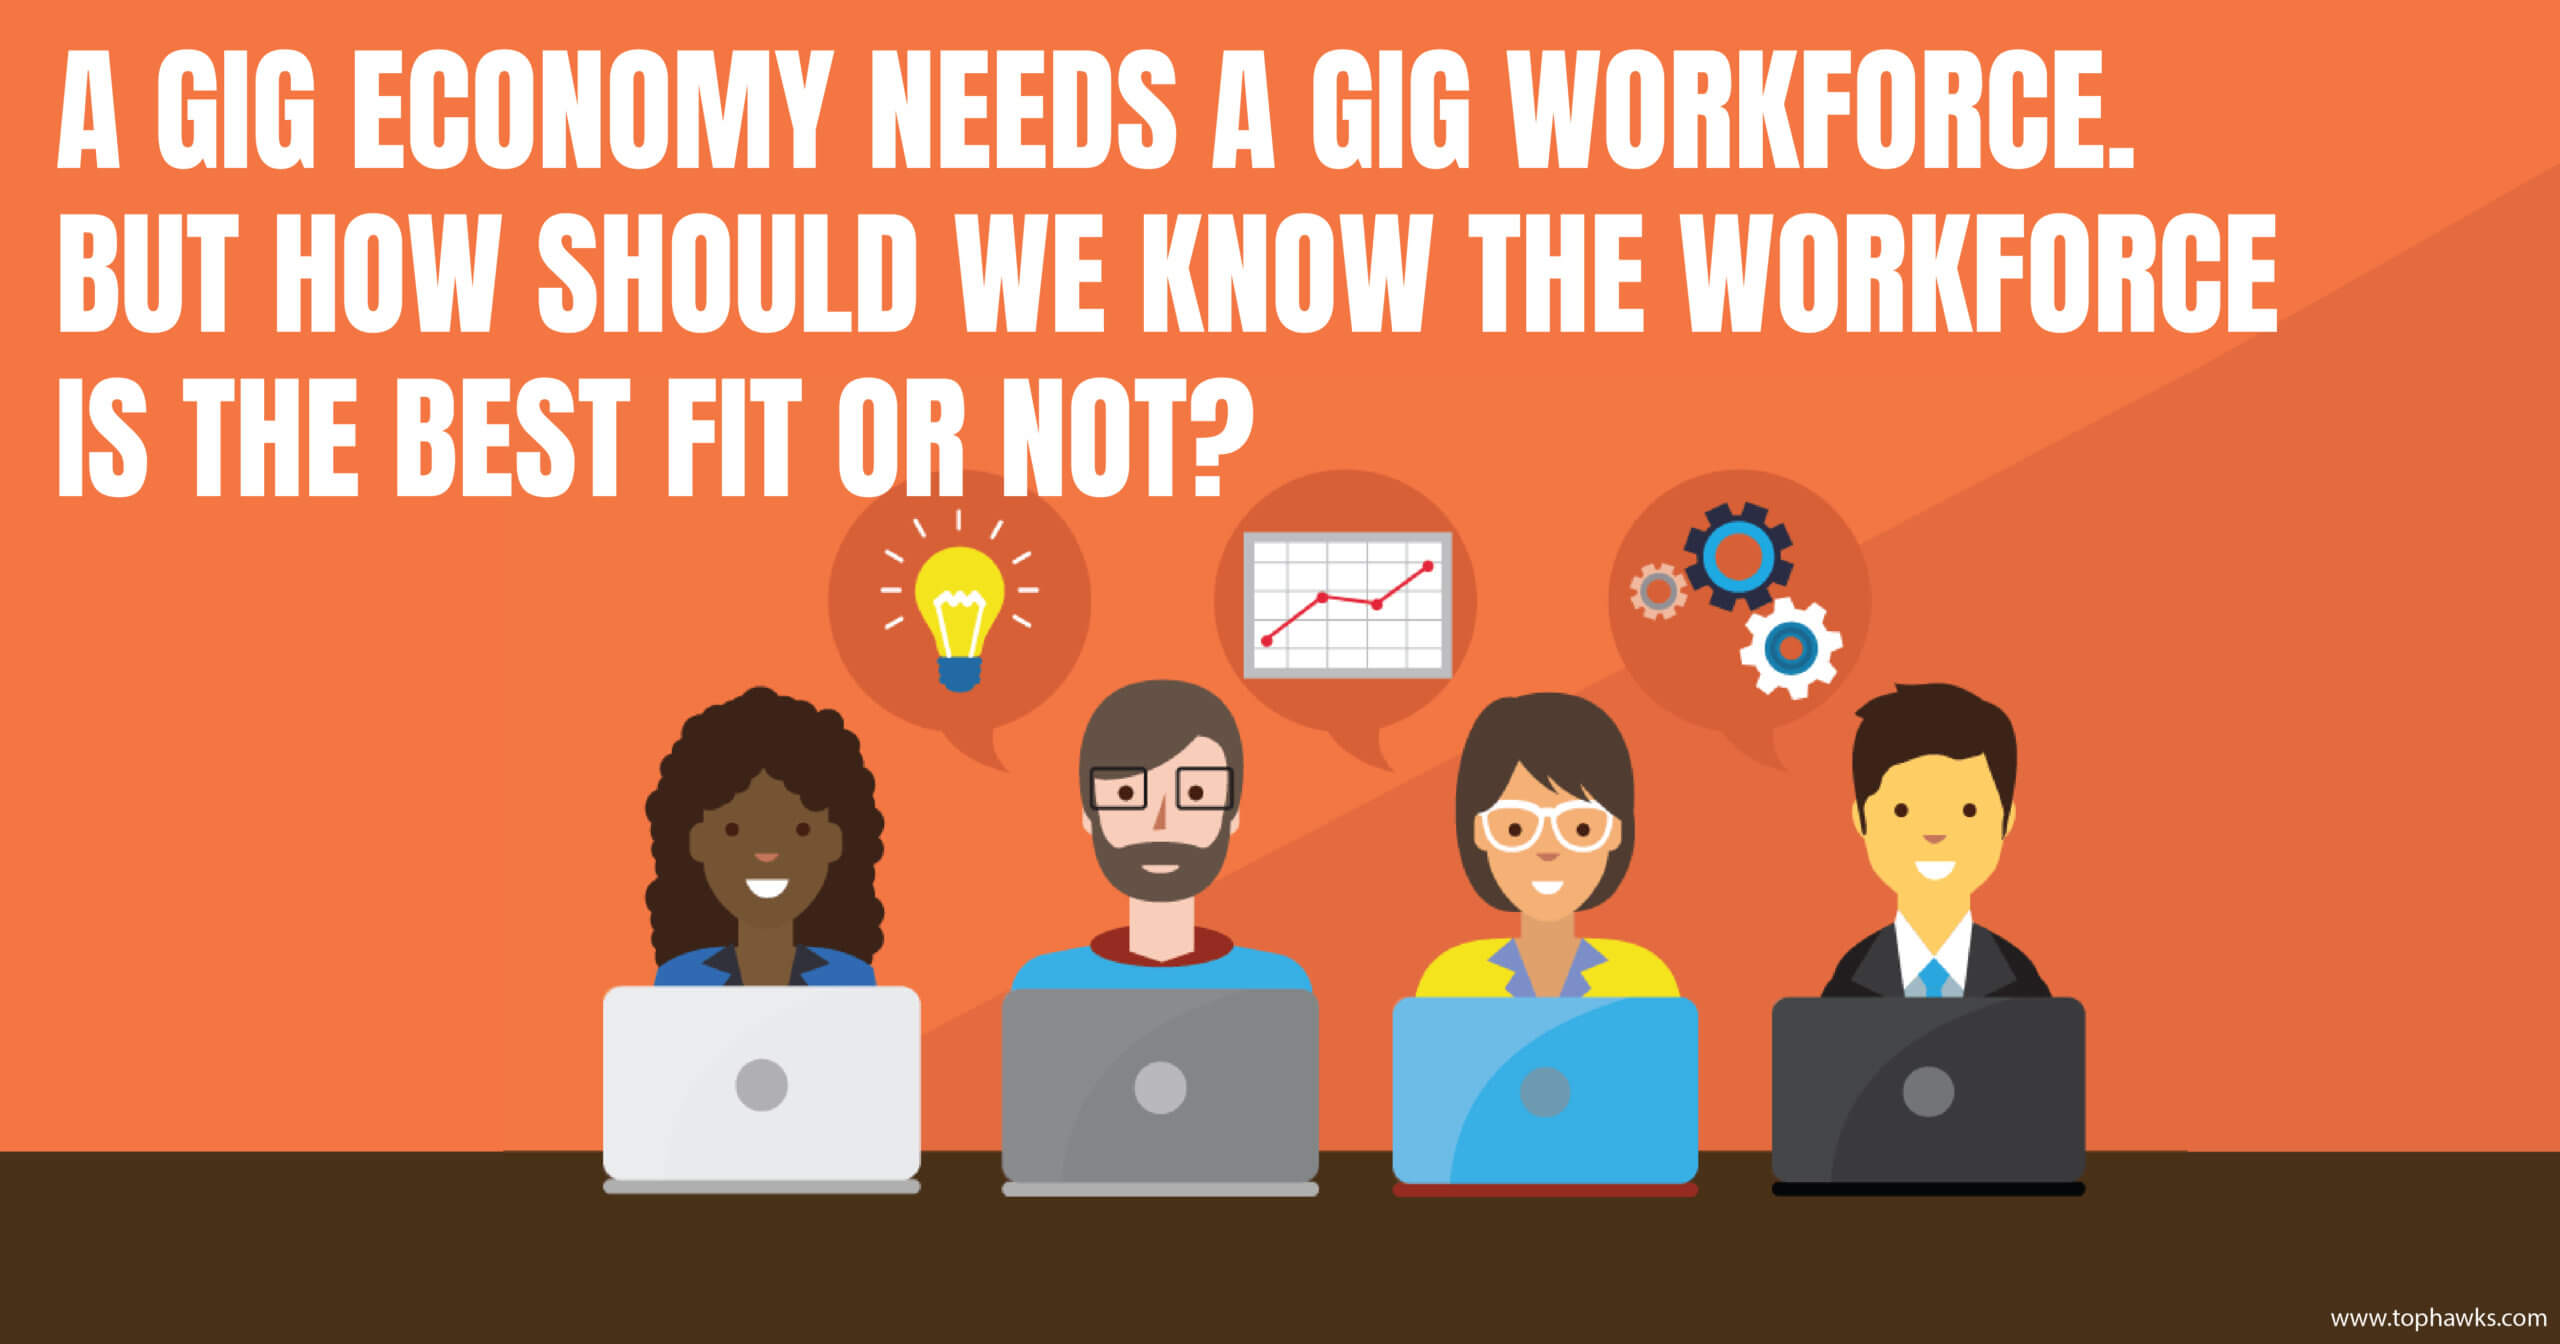 A gig economy needs a gig workforce. But how should we know the workforce is the best fit or not?